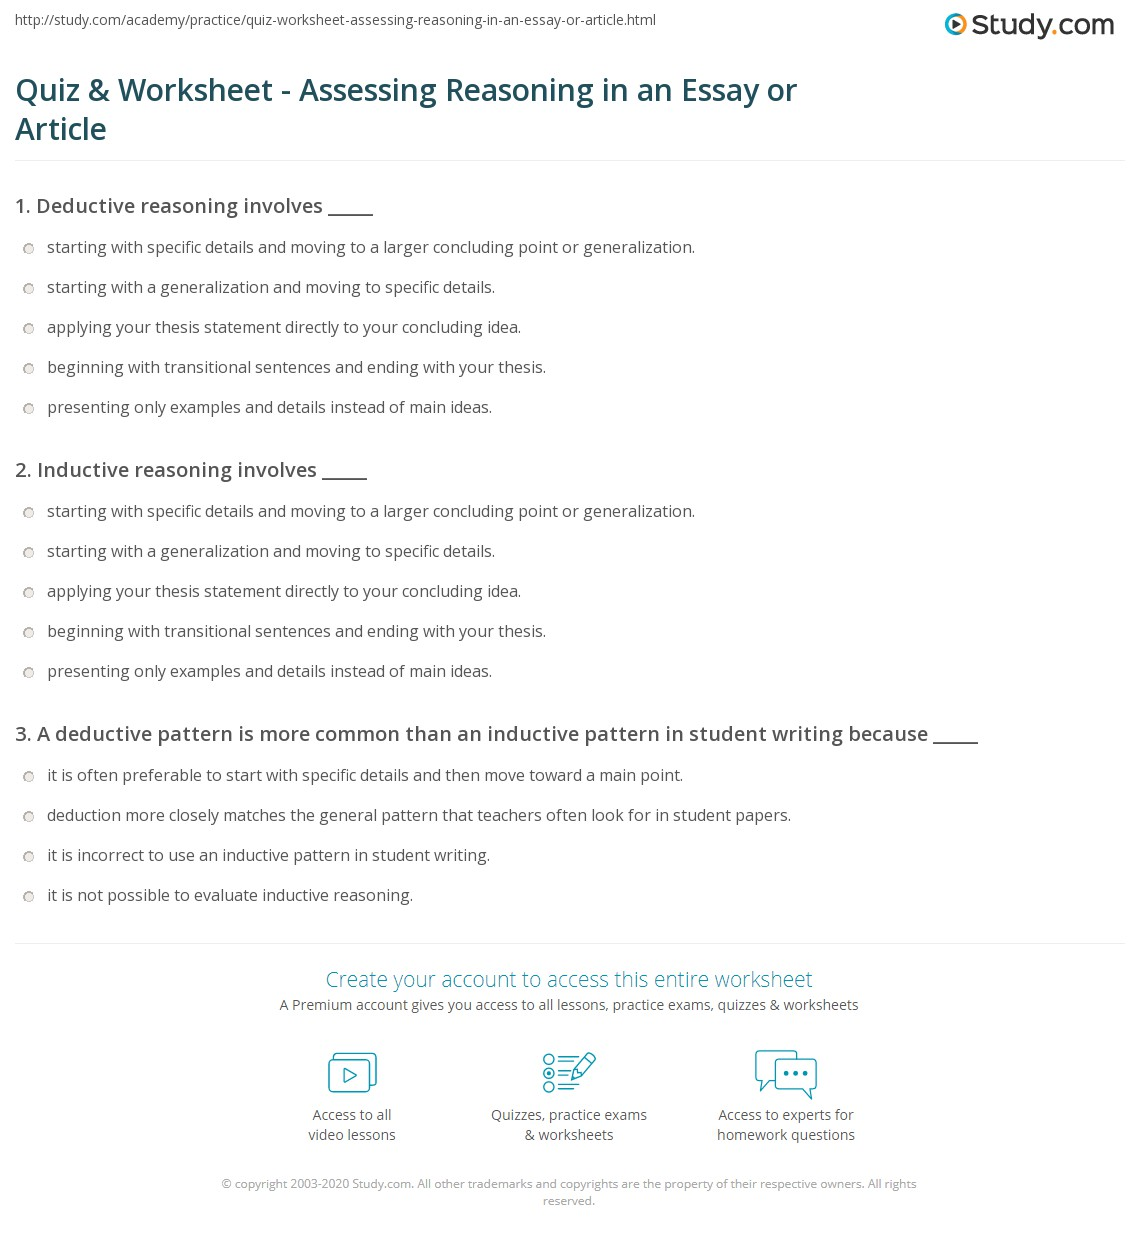 quiz worksheet assessing reasoning in an essay or article  print evaluating reasoning in an essay or article worksheet